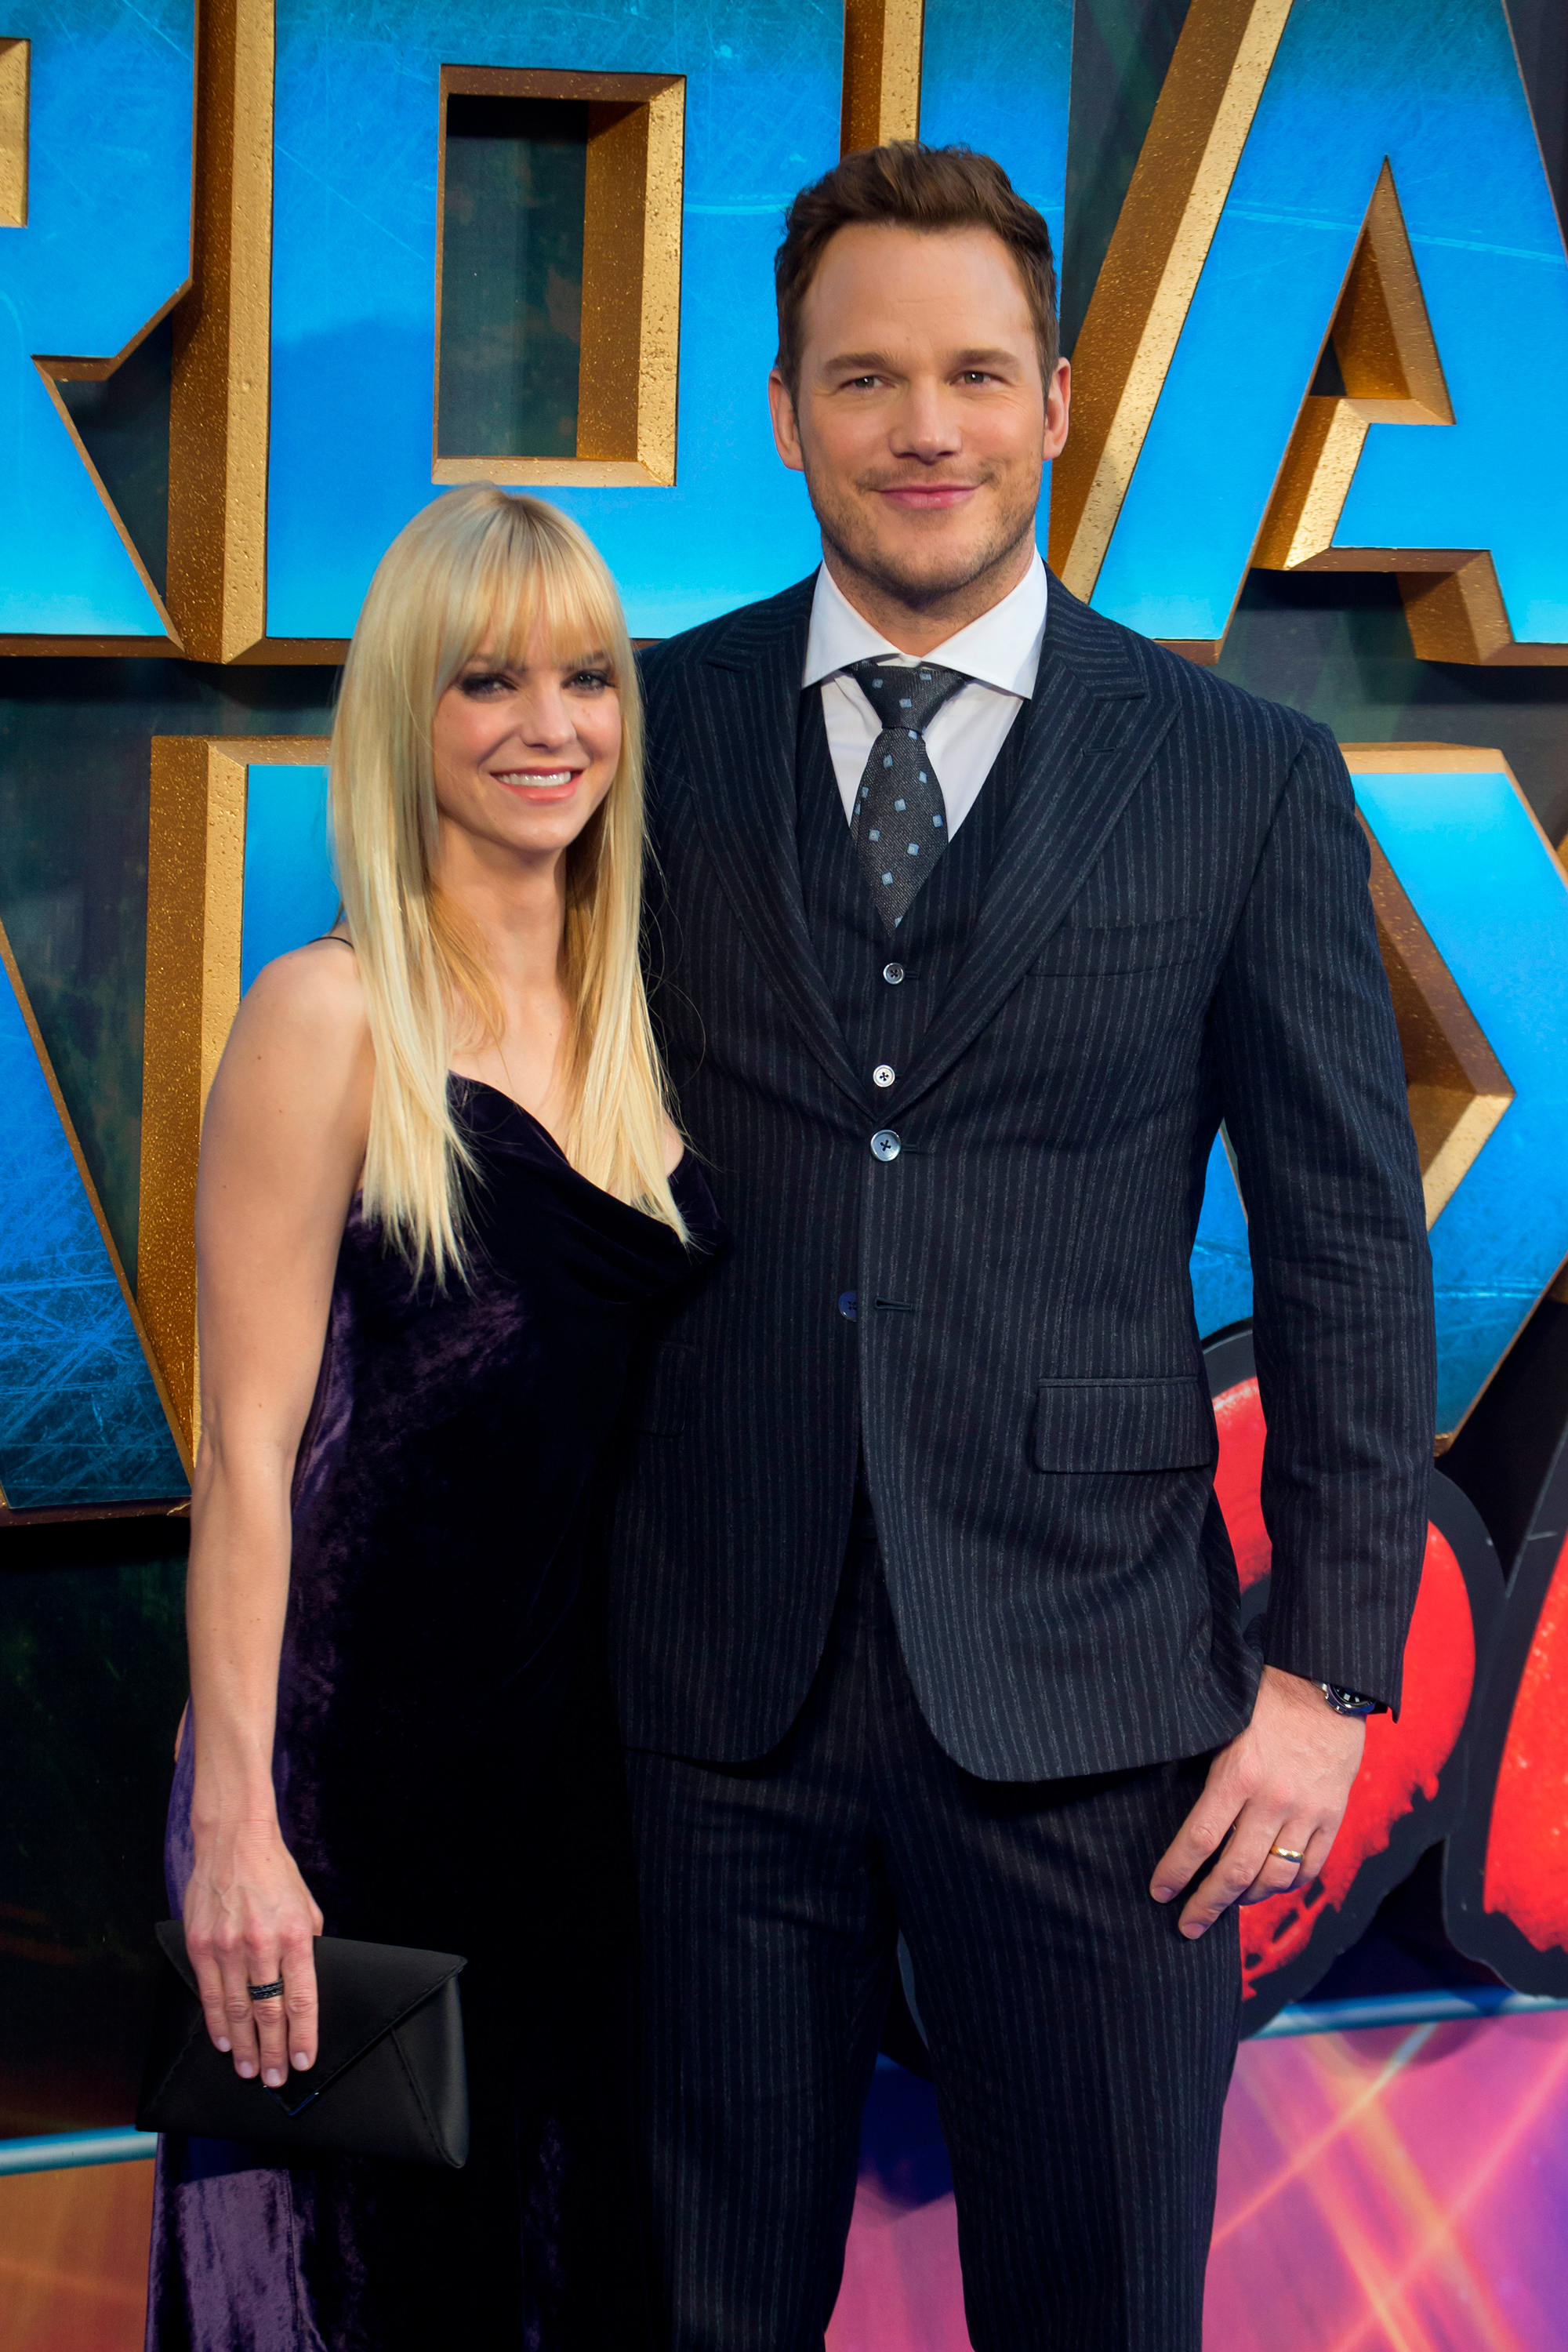 Everything Chris Pratt and Anna Faris Have Said About Coparenting Their Son Jack - Faris was thrilled when Pratt texted her after he proposed to Schwarzenegger in January 2019. In fact, she said on her podcast that the only uncomfortable thing was that people expected her to be upset by the engagement news when she was actually very excited.